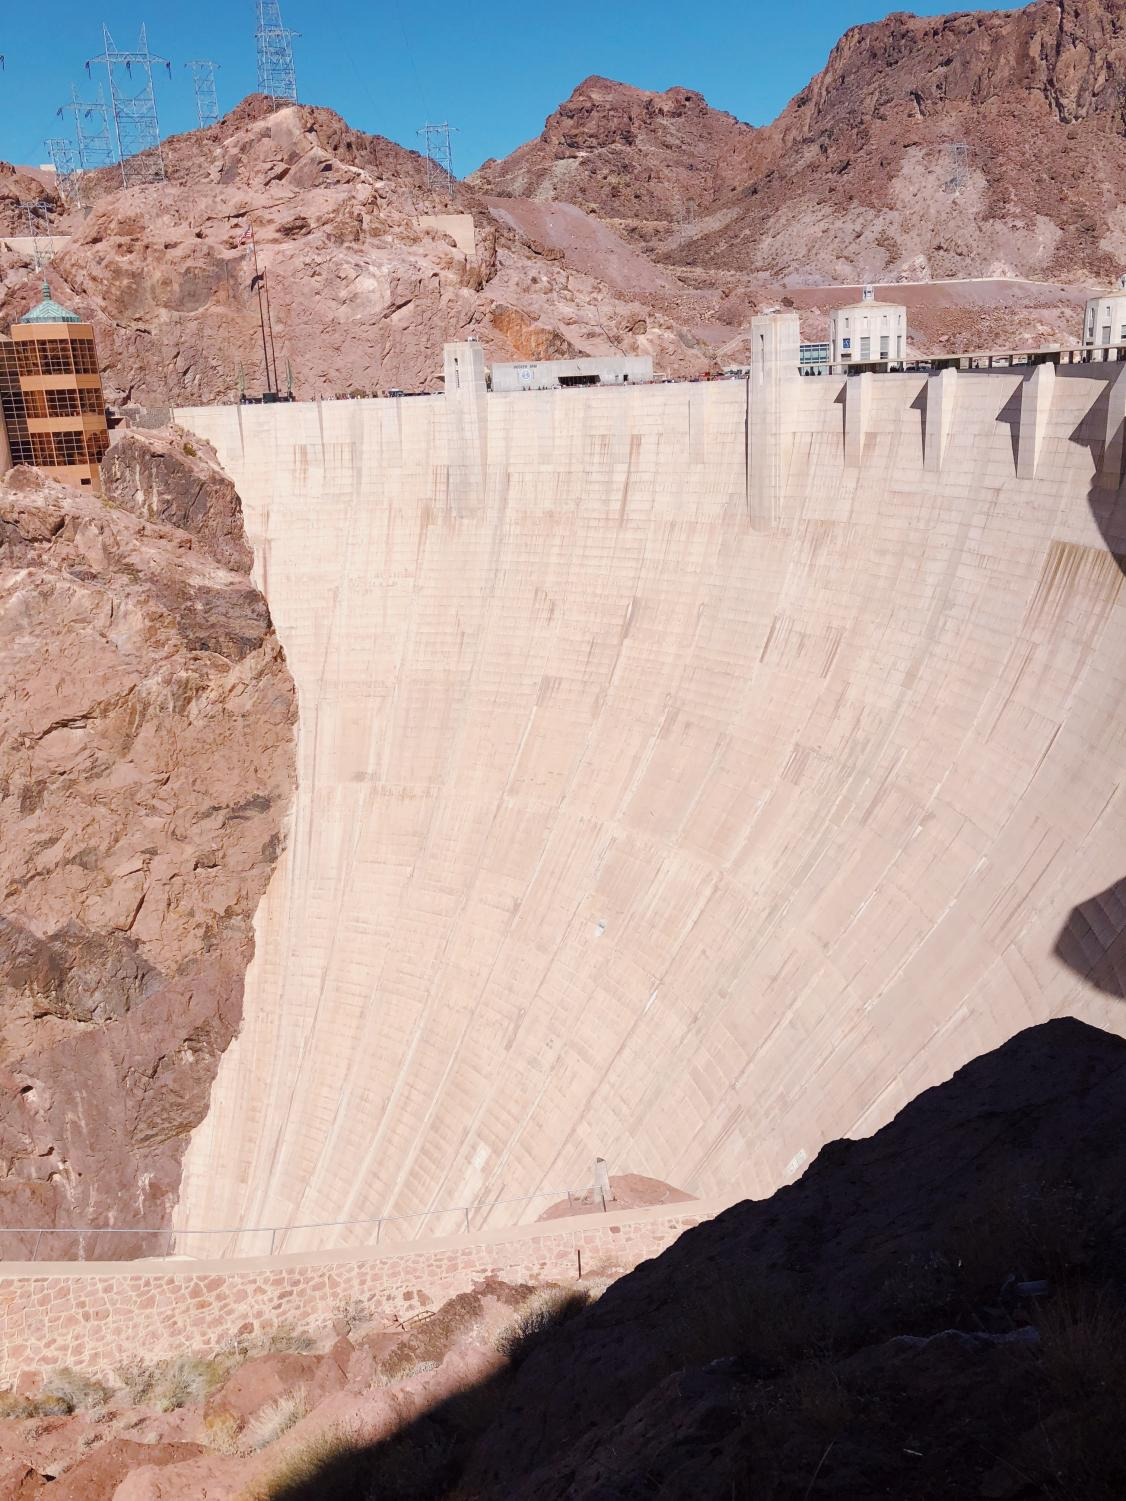 Innovation+of+mankind.+The+Hoover+Dam+is+one+of+the+most+futuristic+man+made+wonders+of+the+US.+The+creation+of+this+Dam+led+to+it+becoming+America%27s+largest+reservoir%3B+via+History.com.+